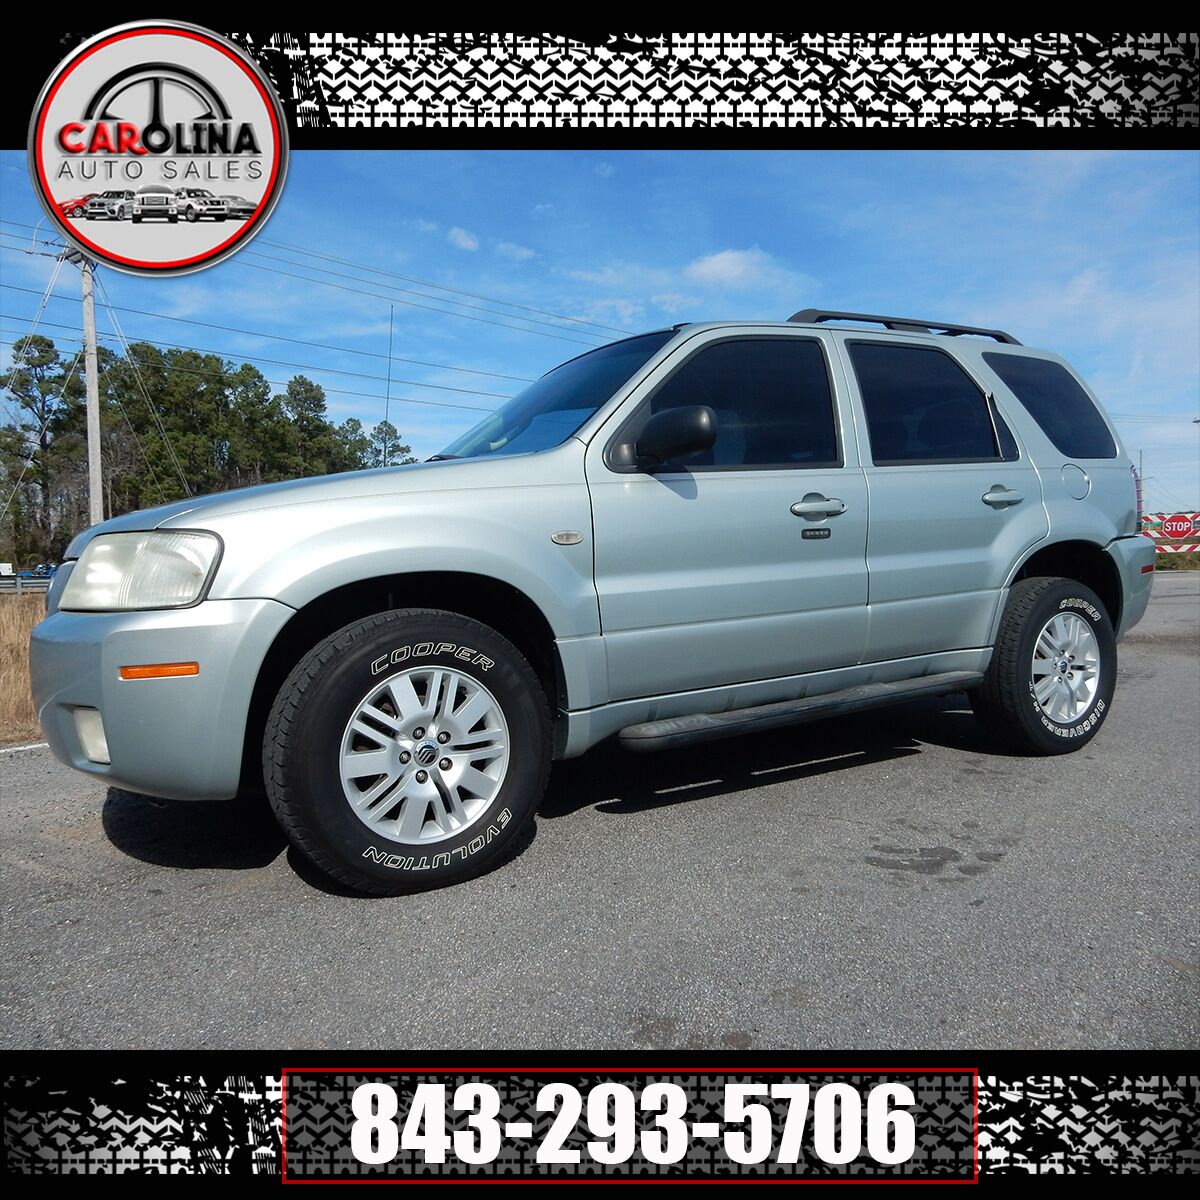 2005 Mercury Mariner Luxury Myrtle Beach SC